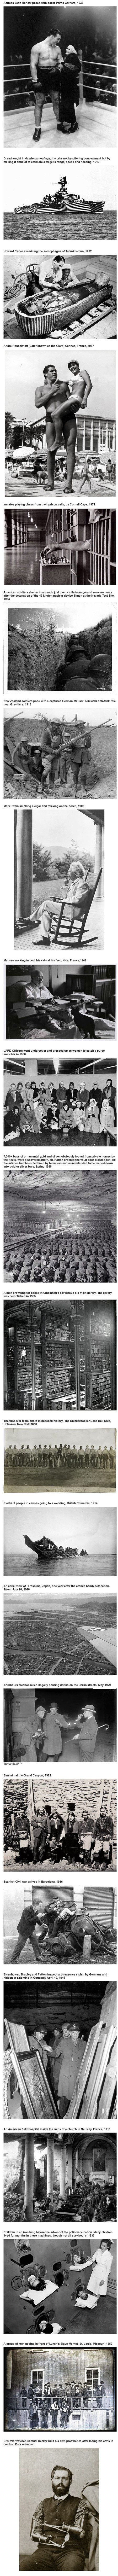 24 Amazing Historical Photos That You Probably Haven't Seen Before - TechEBlog